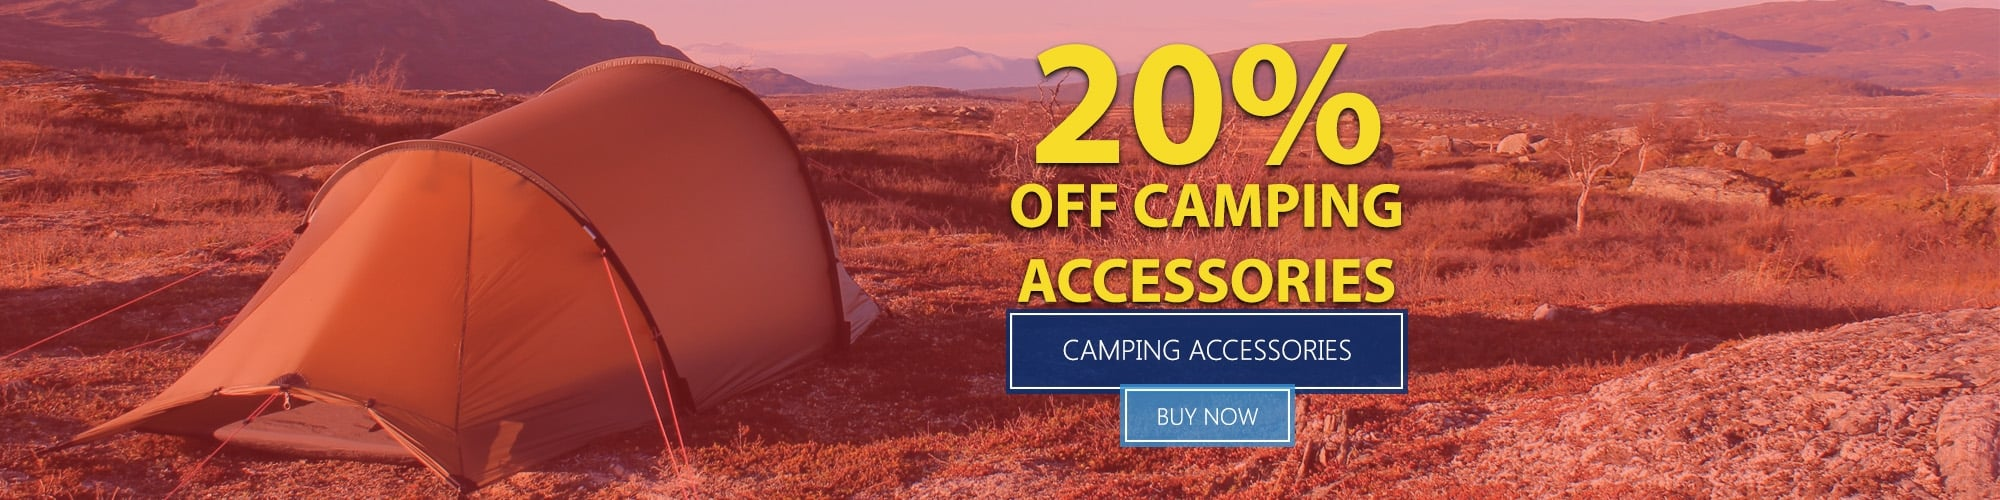 Summer Sale 2016 - 20% Off All Camping Accessories